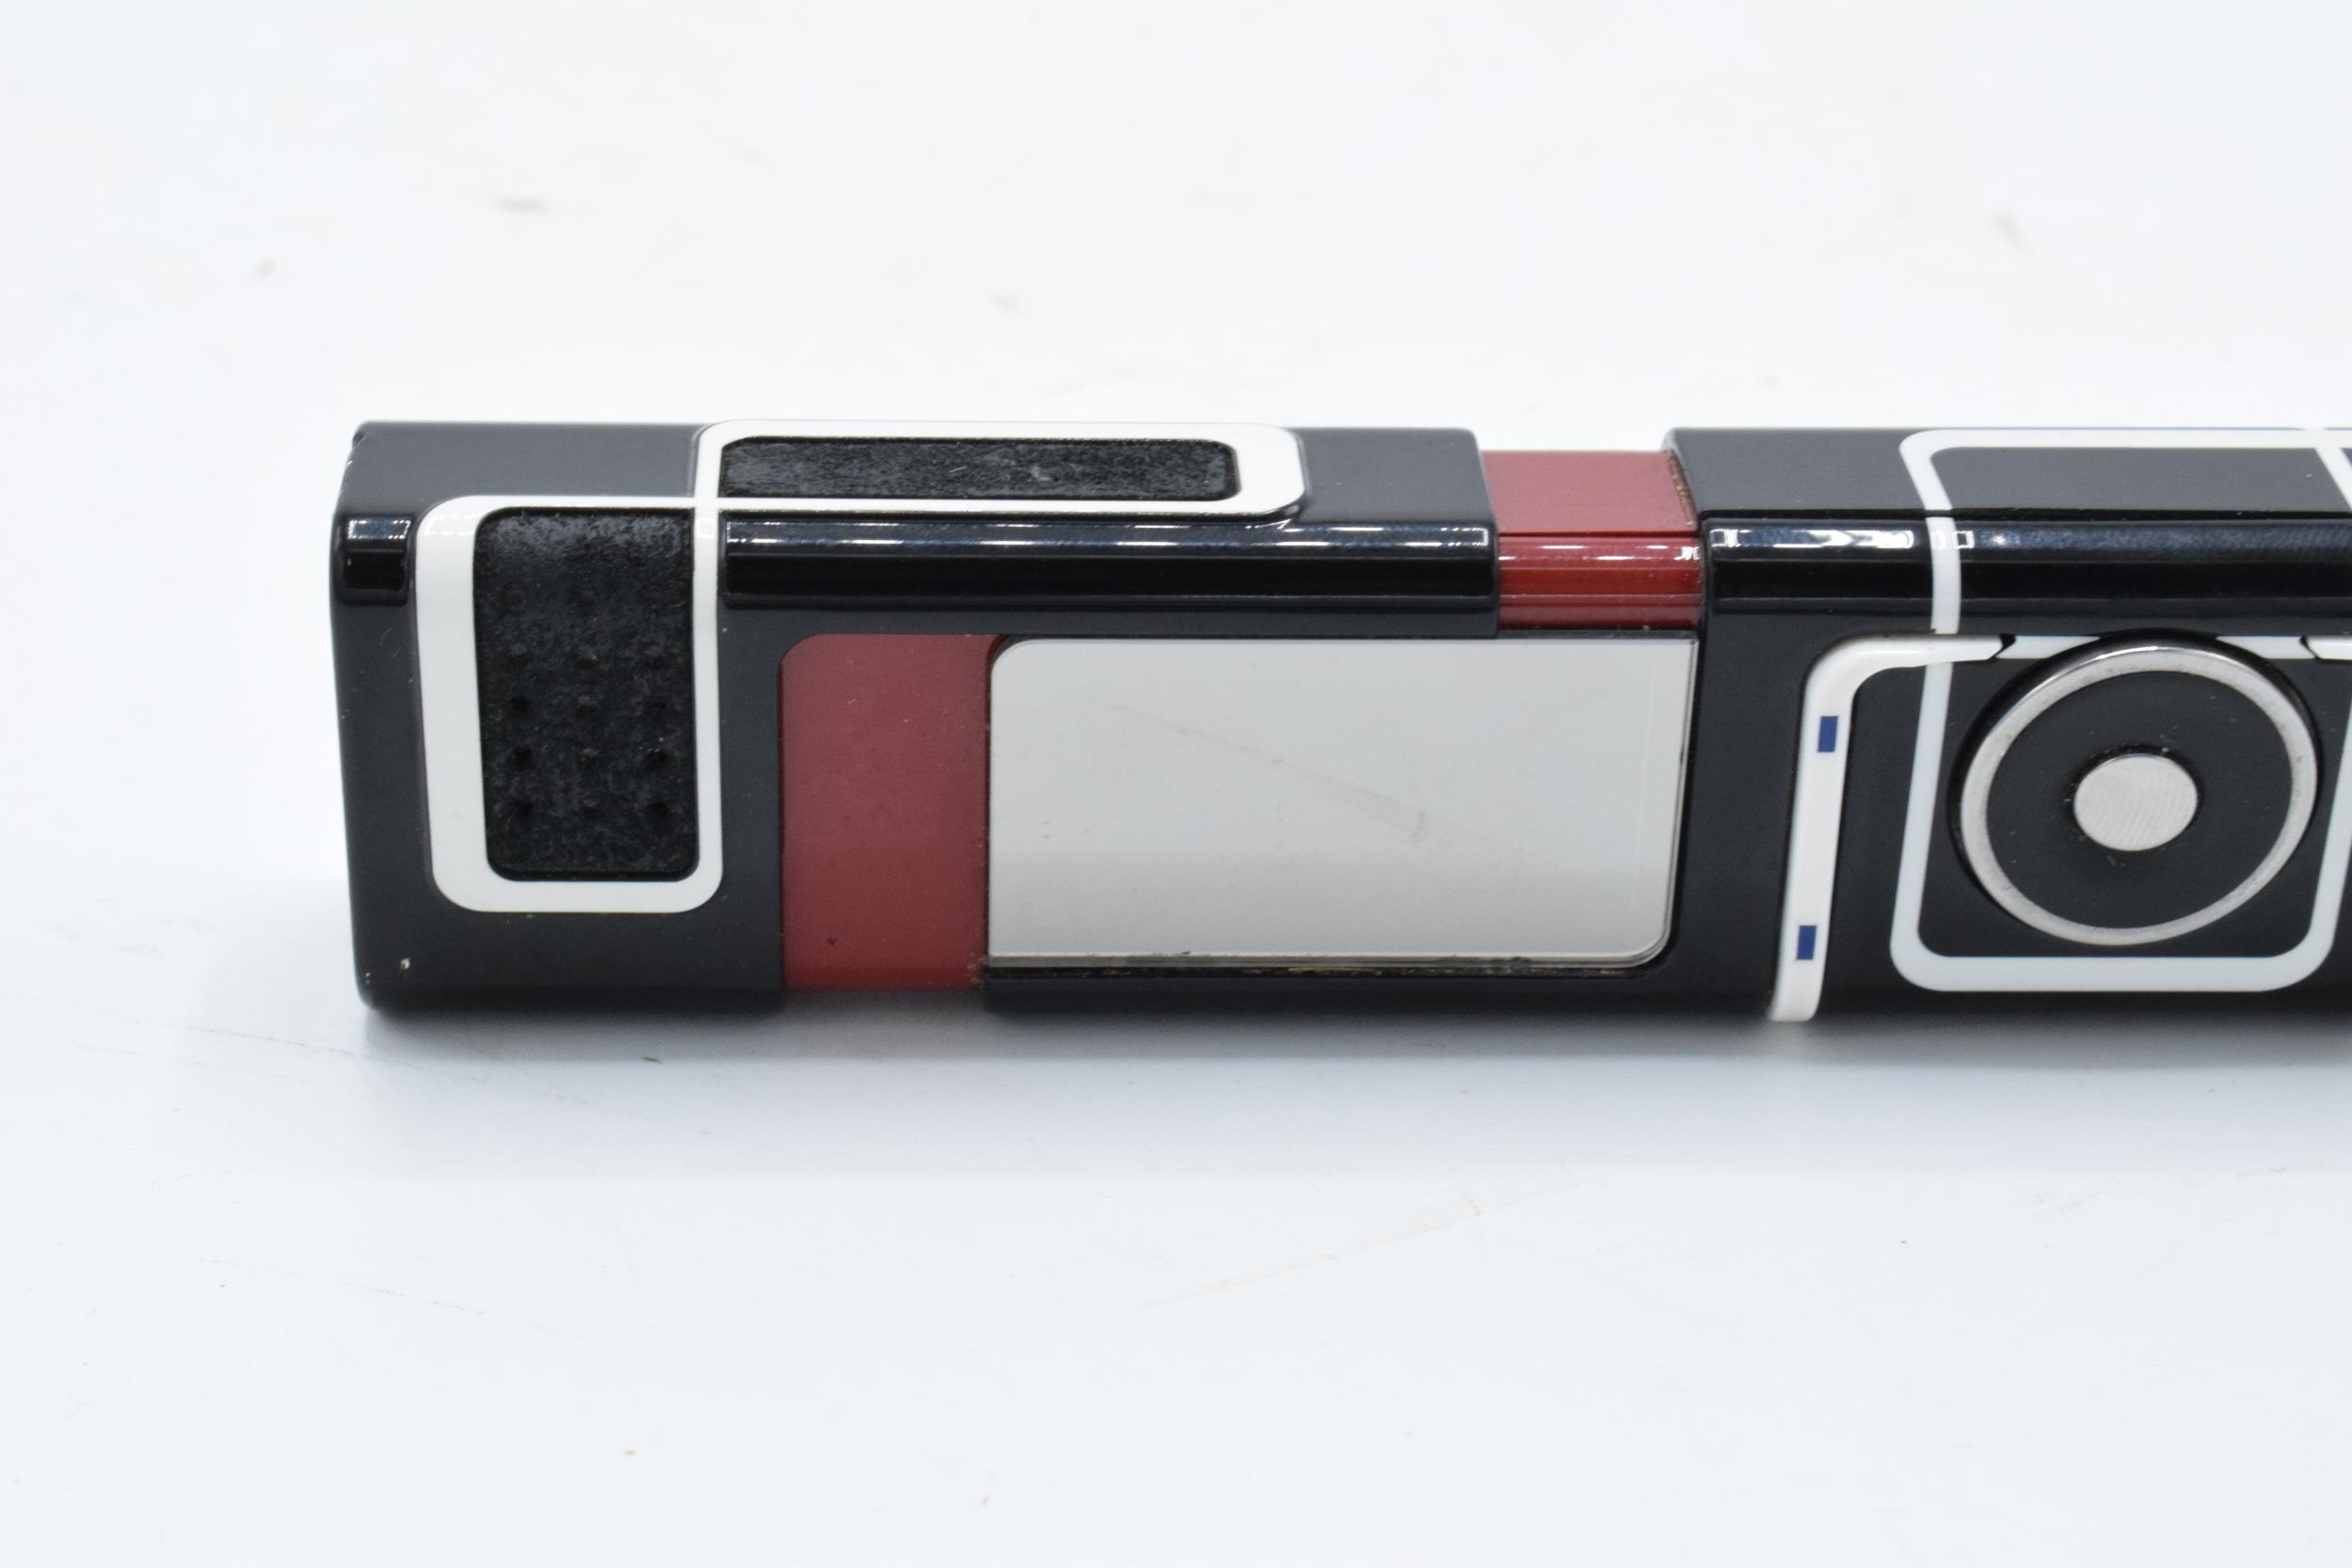 Nokia 7280 'lipstick' mobile phone complete with charger, ear phones and a printed user guide. - Image 3 of 8